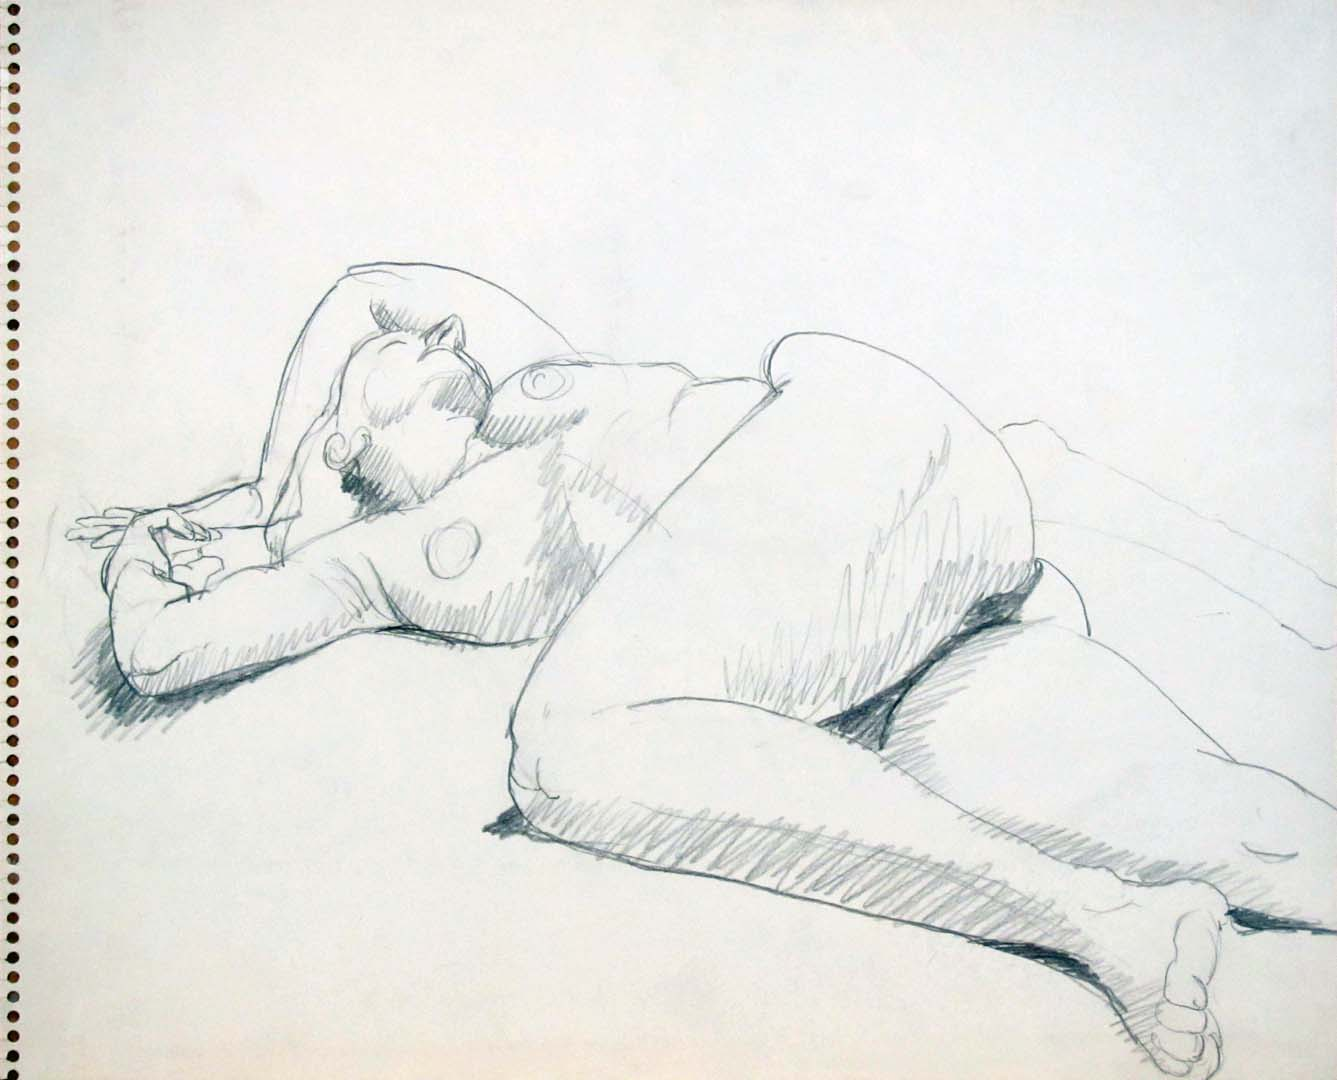 Reclined Nude with Arms Over Head Pencil 13.75 x 17